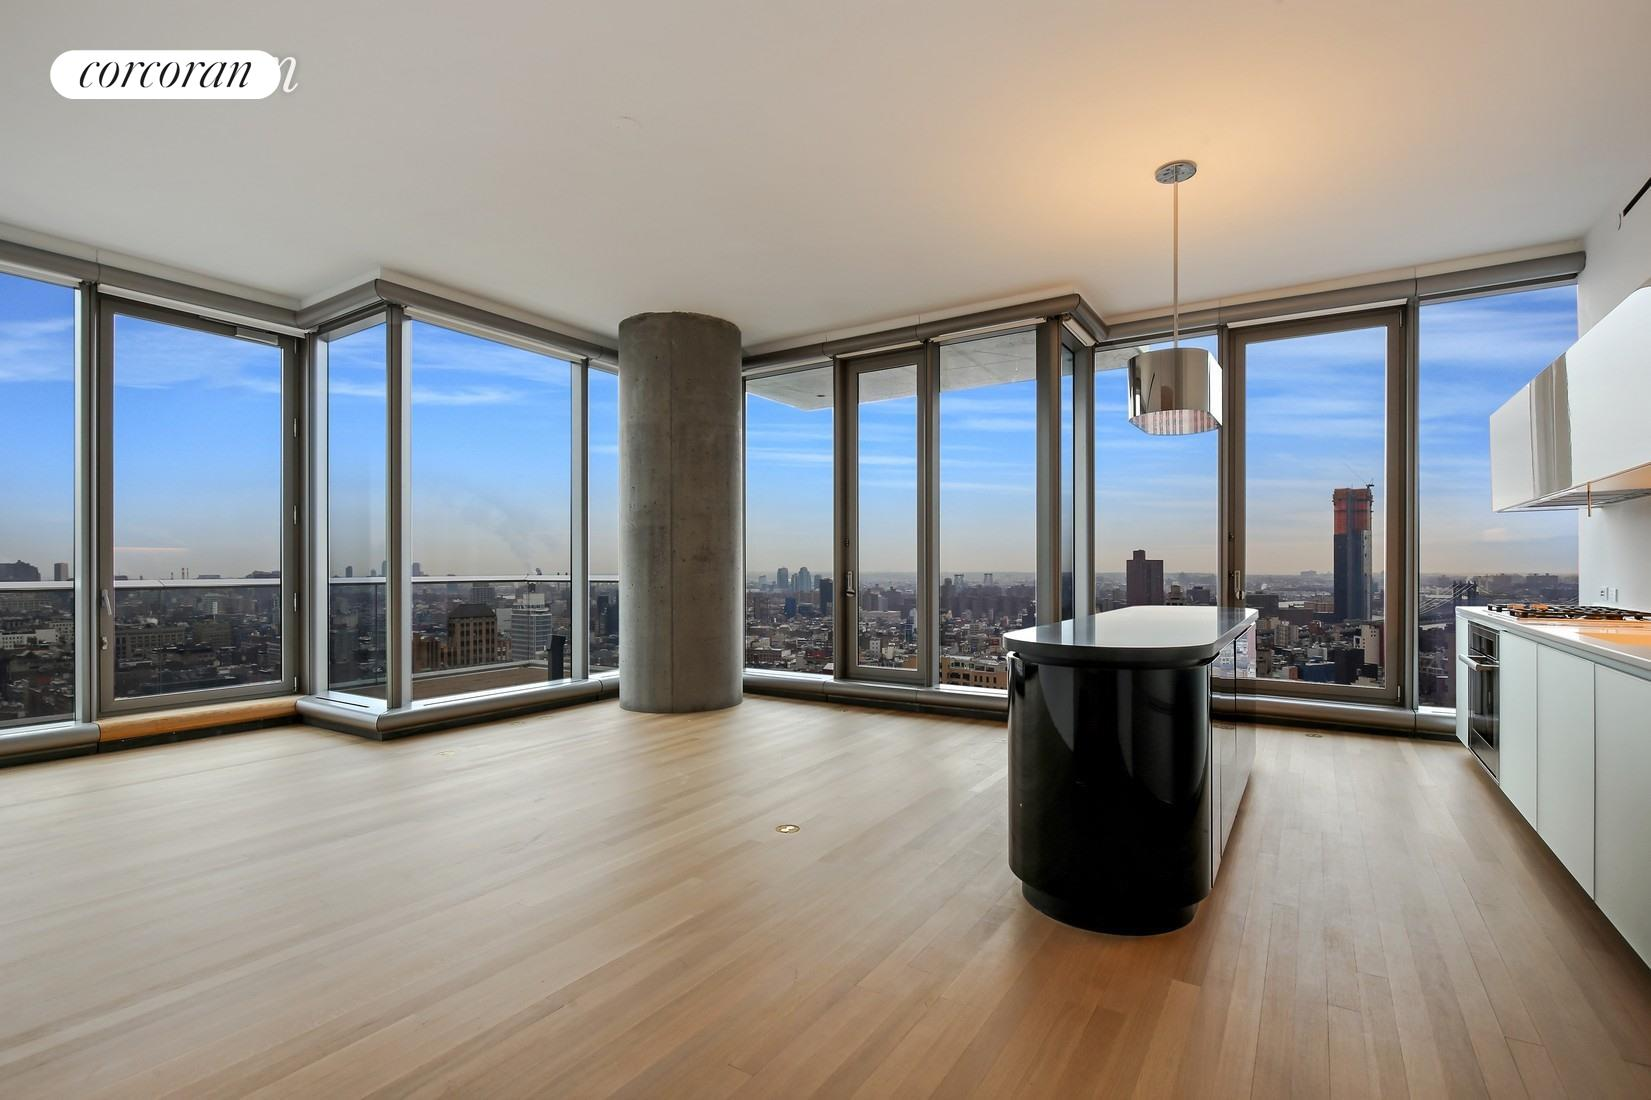 This stunning, generously-sized three bedroom, three and one half bathroom apartment with spectacular views from every window, and a 24  8 foot balcony is available for rent at the iconic 56 Leonard! There are stunning open city, river, and bridge views from floor to ceiling windows, and the North and Eastern exposures are equally beautiful both day and night. The open kitchen is well-designed, with an expandable breakfast bar, white Corian counters, glossy white cabinets, and top of the line appliances including a Sub-Zero refrigerator, and Miele oven and dishwasher. There are soaring 11' ceilings, solid white oak hard wood floors, oversized rooms, a Miele washer/dryer, seven custom fitted closets, and a large dressing room. The spectacular en-suite windowed master bath has stunning elements of glass, mirrors, travertine, marble, and radiant heated floors, and the powder room is very chic! The windows have all been fitted with shades. There is a 4-pipe heating and cooling system for year-round multi-zone climate control. 421A Tax Abatement. One of the most exciting and fascinating new condominiums in Manhattan, 56 Leonard was designed by architects Herzog & de Meuron, and reflects a unique design. There are 145 unique residences, all with outdoor space, abundant light and breathtaking views of the cityscape, rivers, bridges and beyond. This full service building has a live-in super, doorman, and concierge, and 17,000 square feet of amenities, including a 75' lap pool with a sundeck, a state of the art gym, a screening room, a lounge, a dining room and a playroom as well as an on-site parking garage.